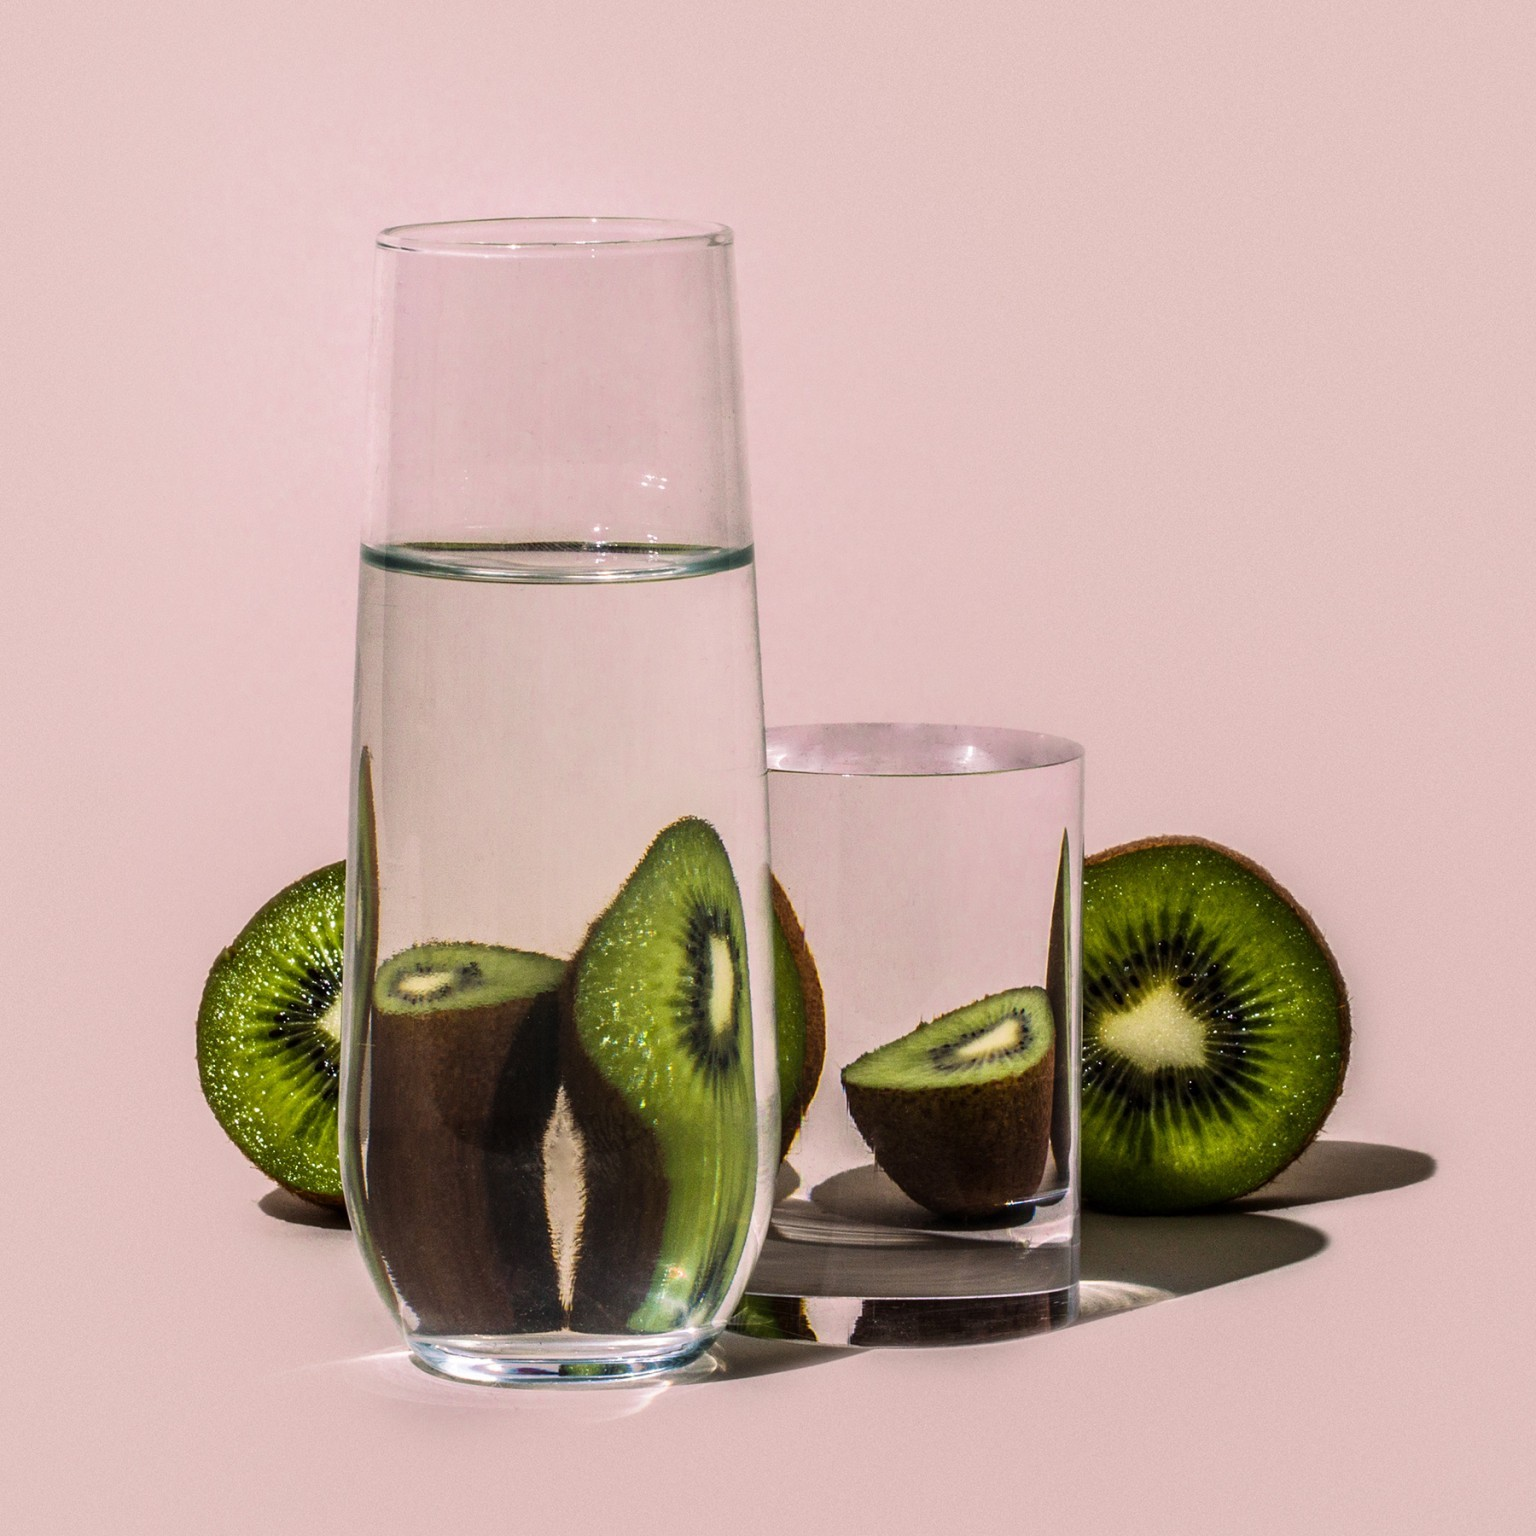 Foods Distorted Through Liquid and Glass in Photographs by Suzanne Saroff